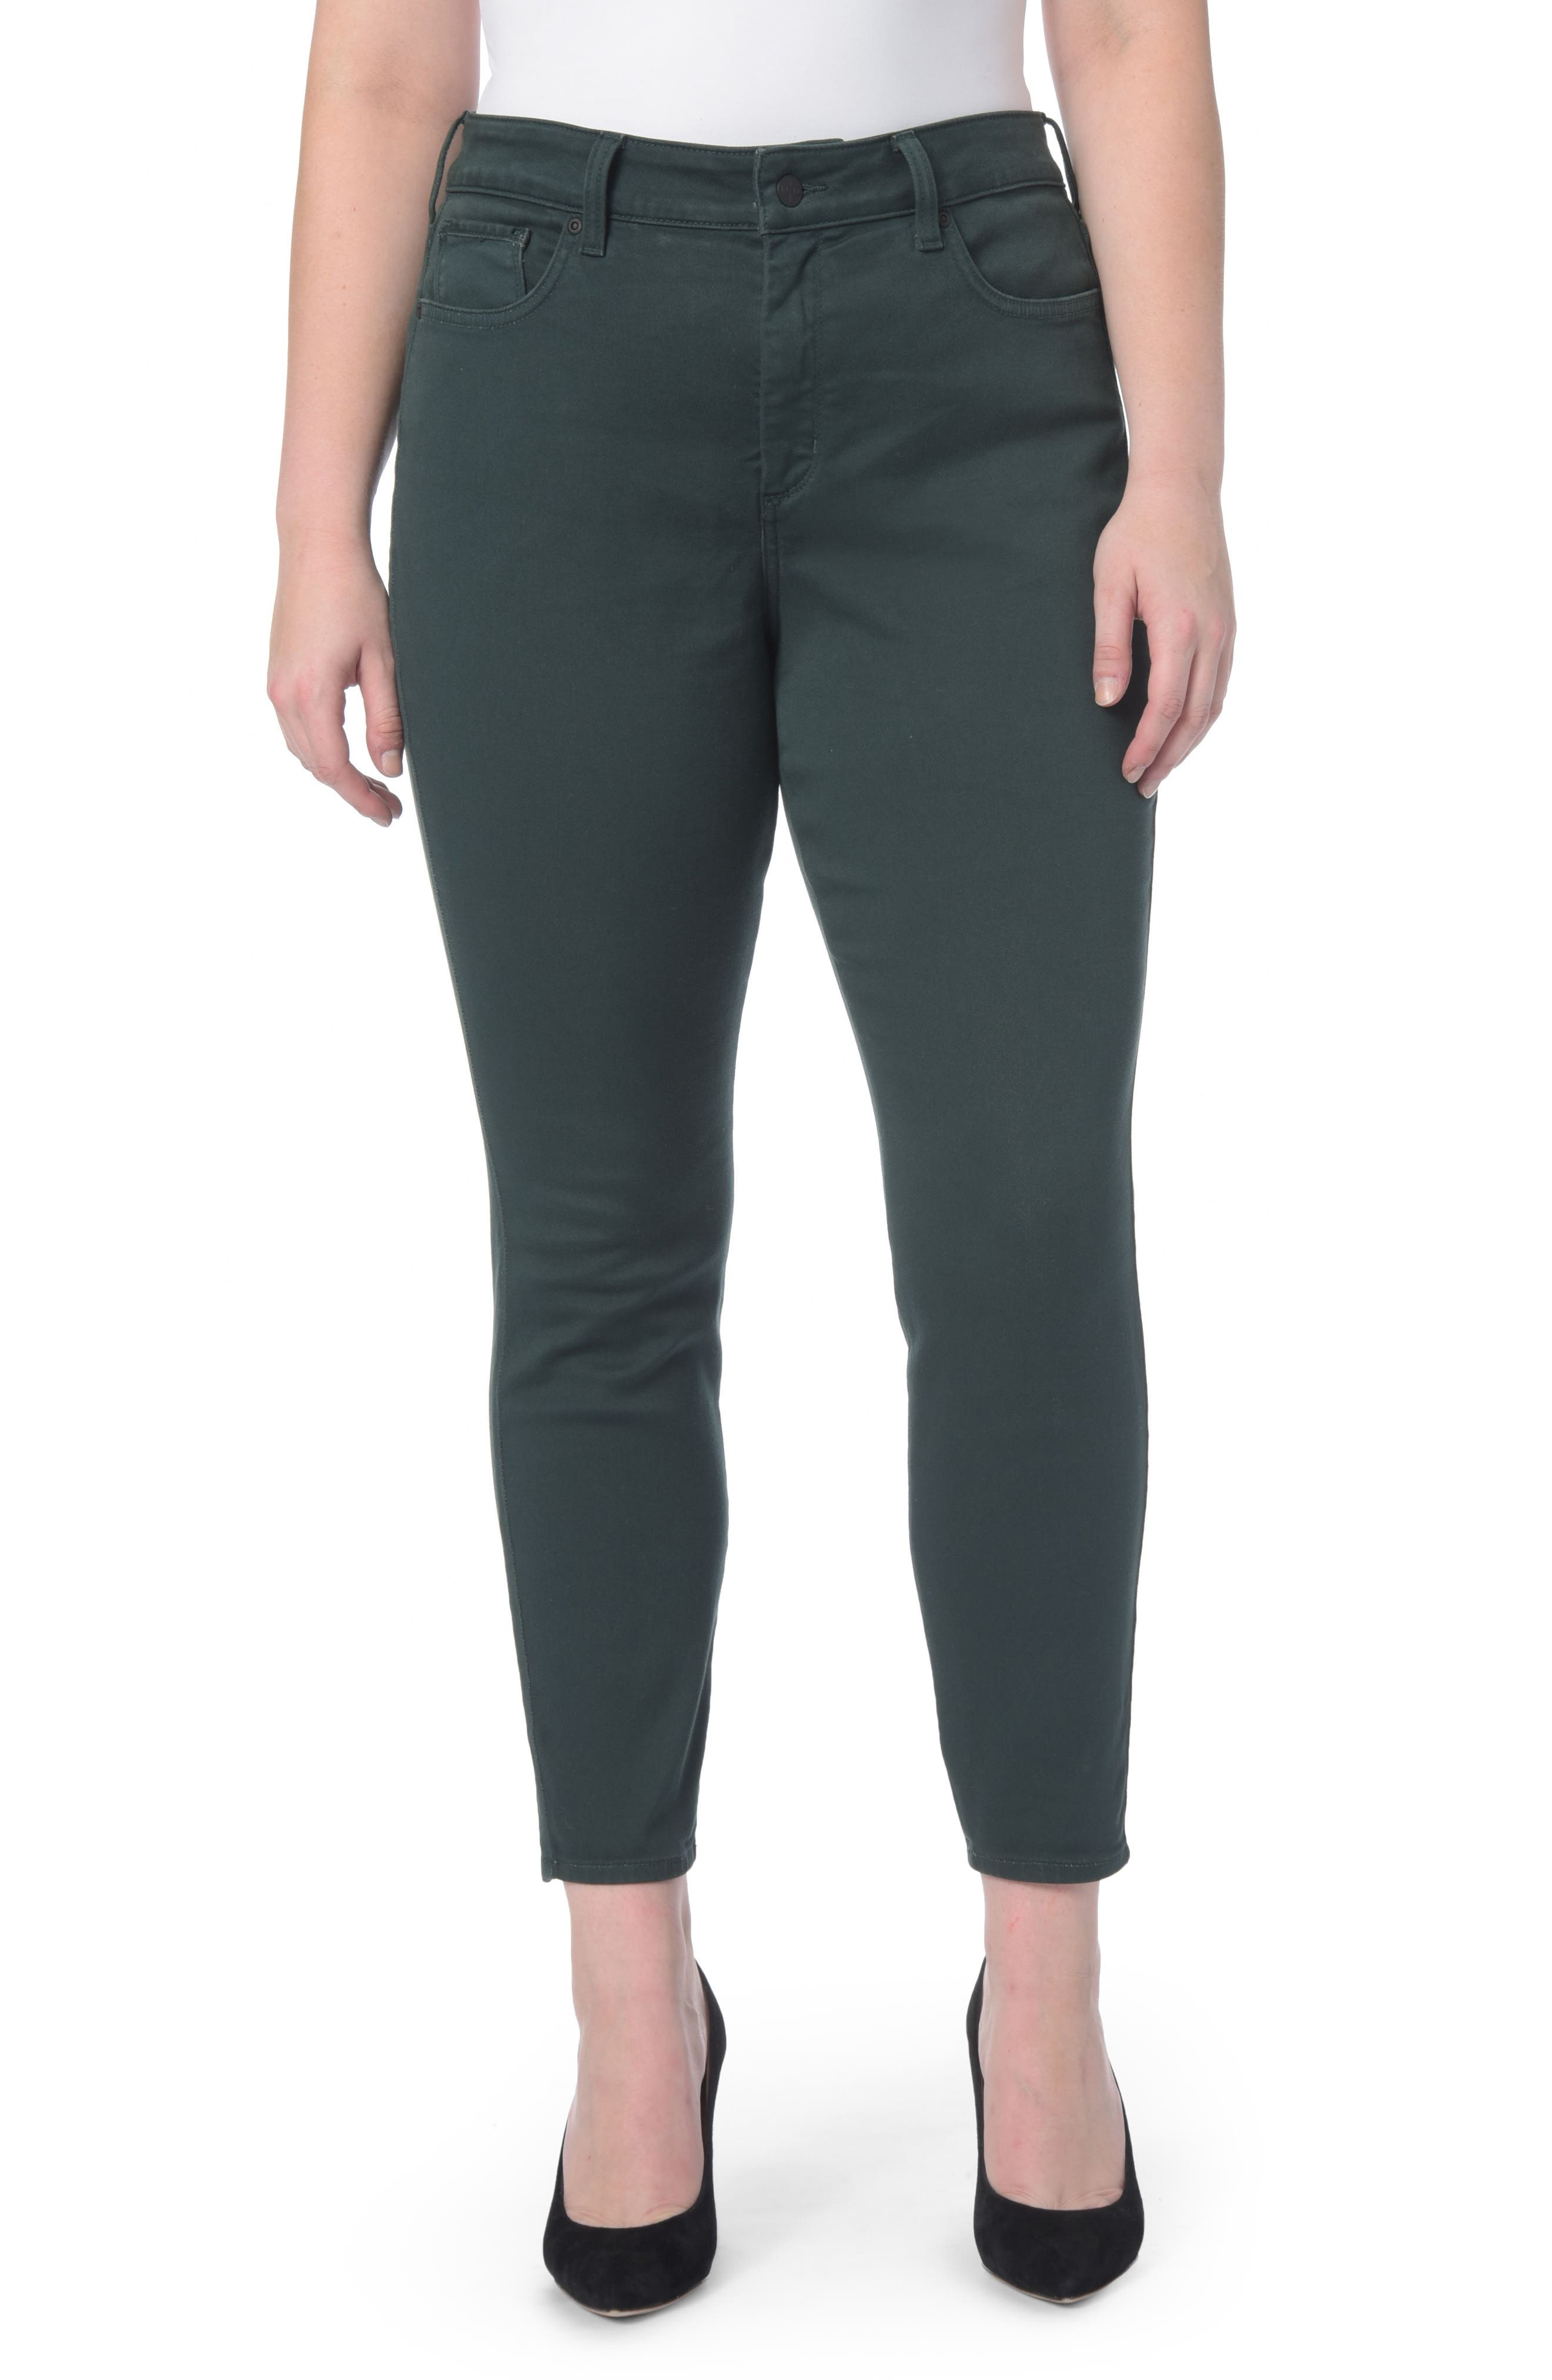 Ami Stretch Skinny Jeans,                             Main thumbnail 1, color,                             Green